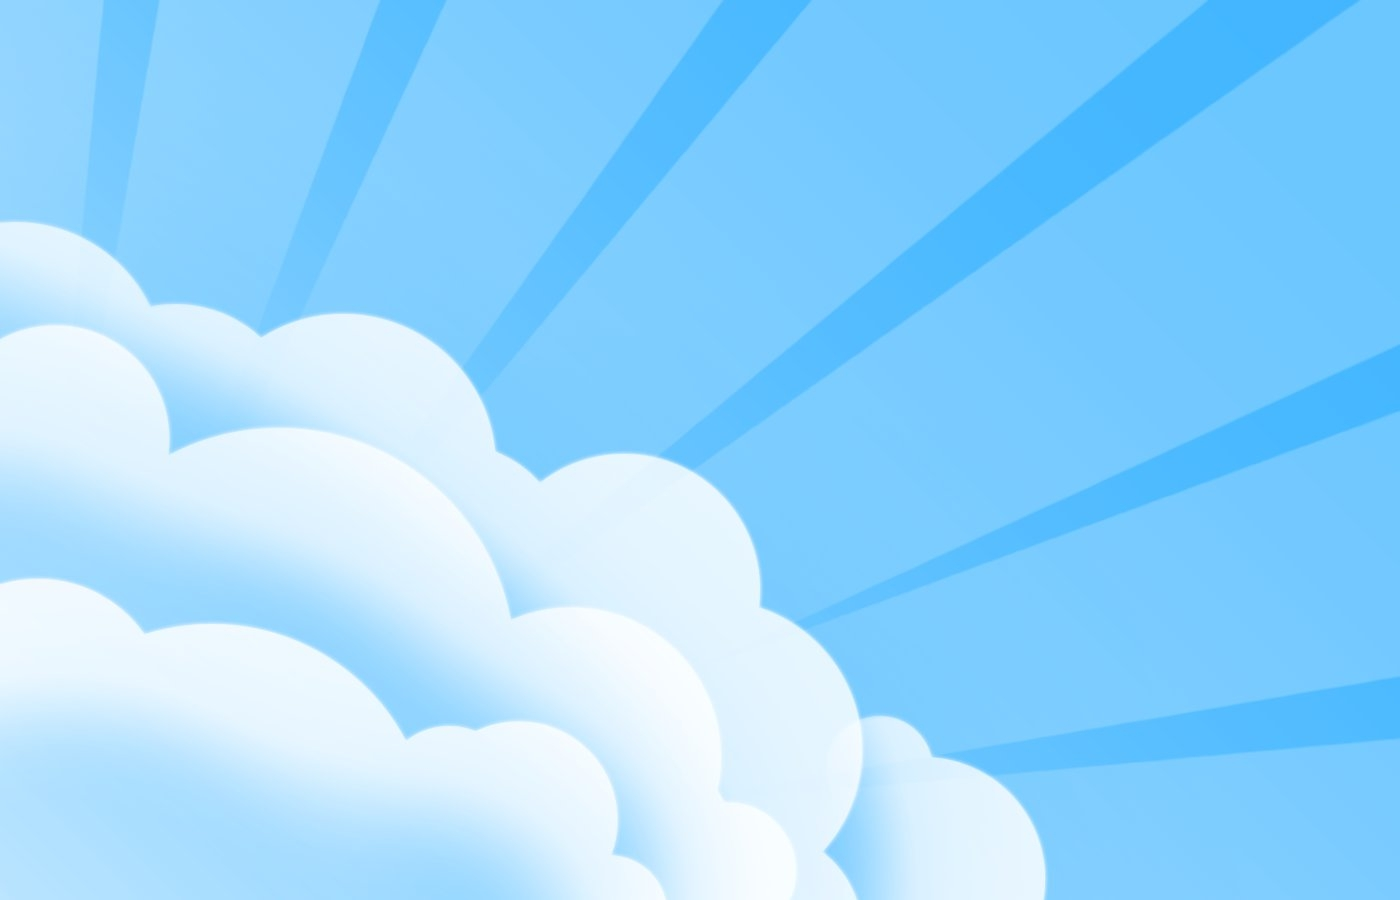 sky blue background vector - photo #16